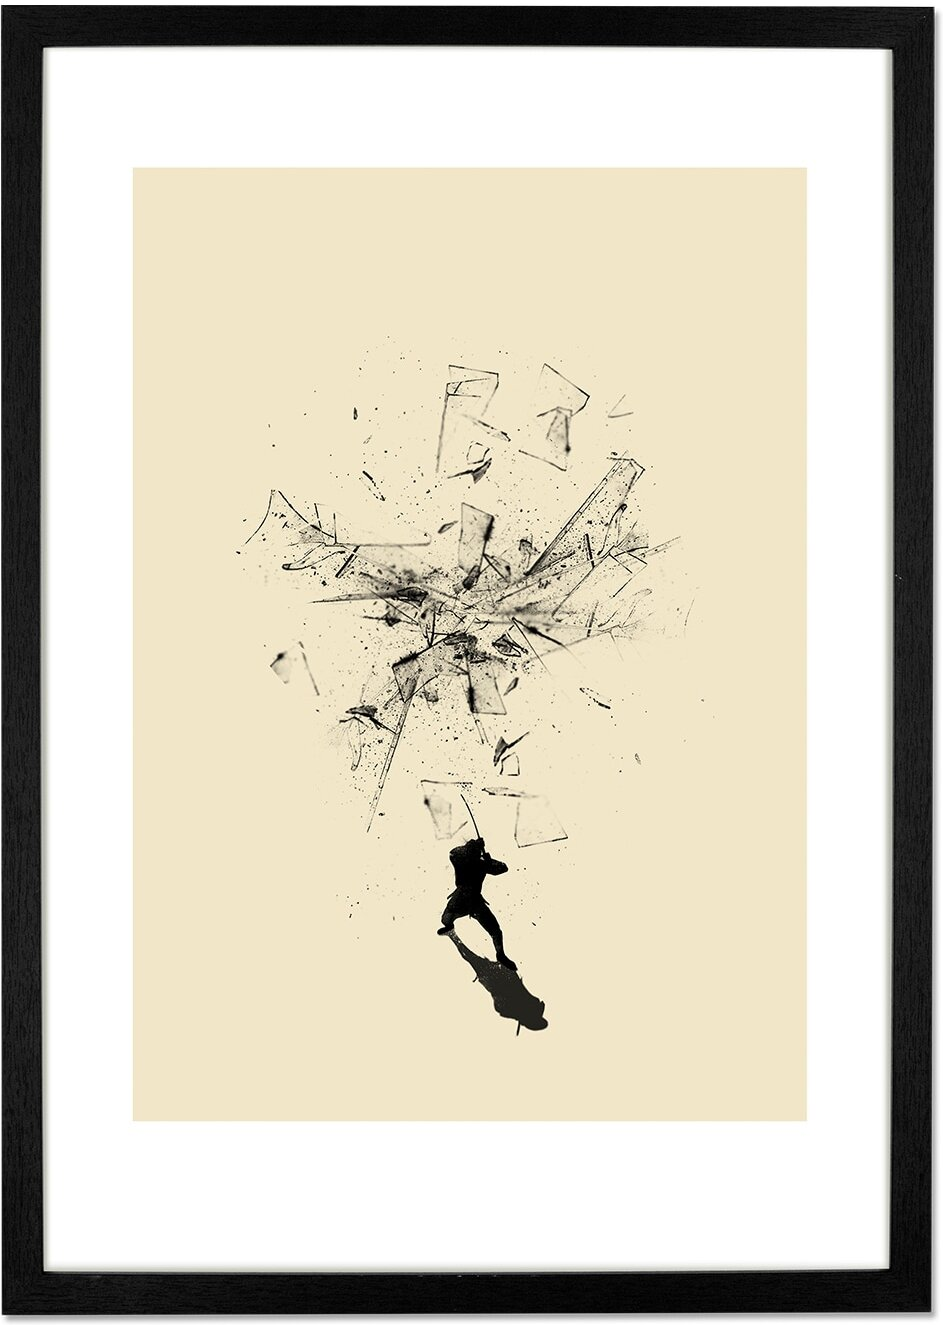 Ninja Moves by Nicebleed, 42 x 59cm (A2) Framed Print